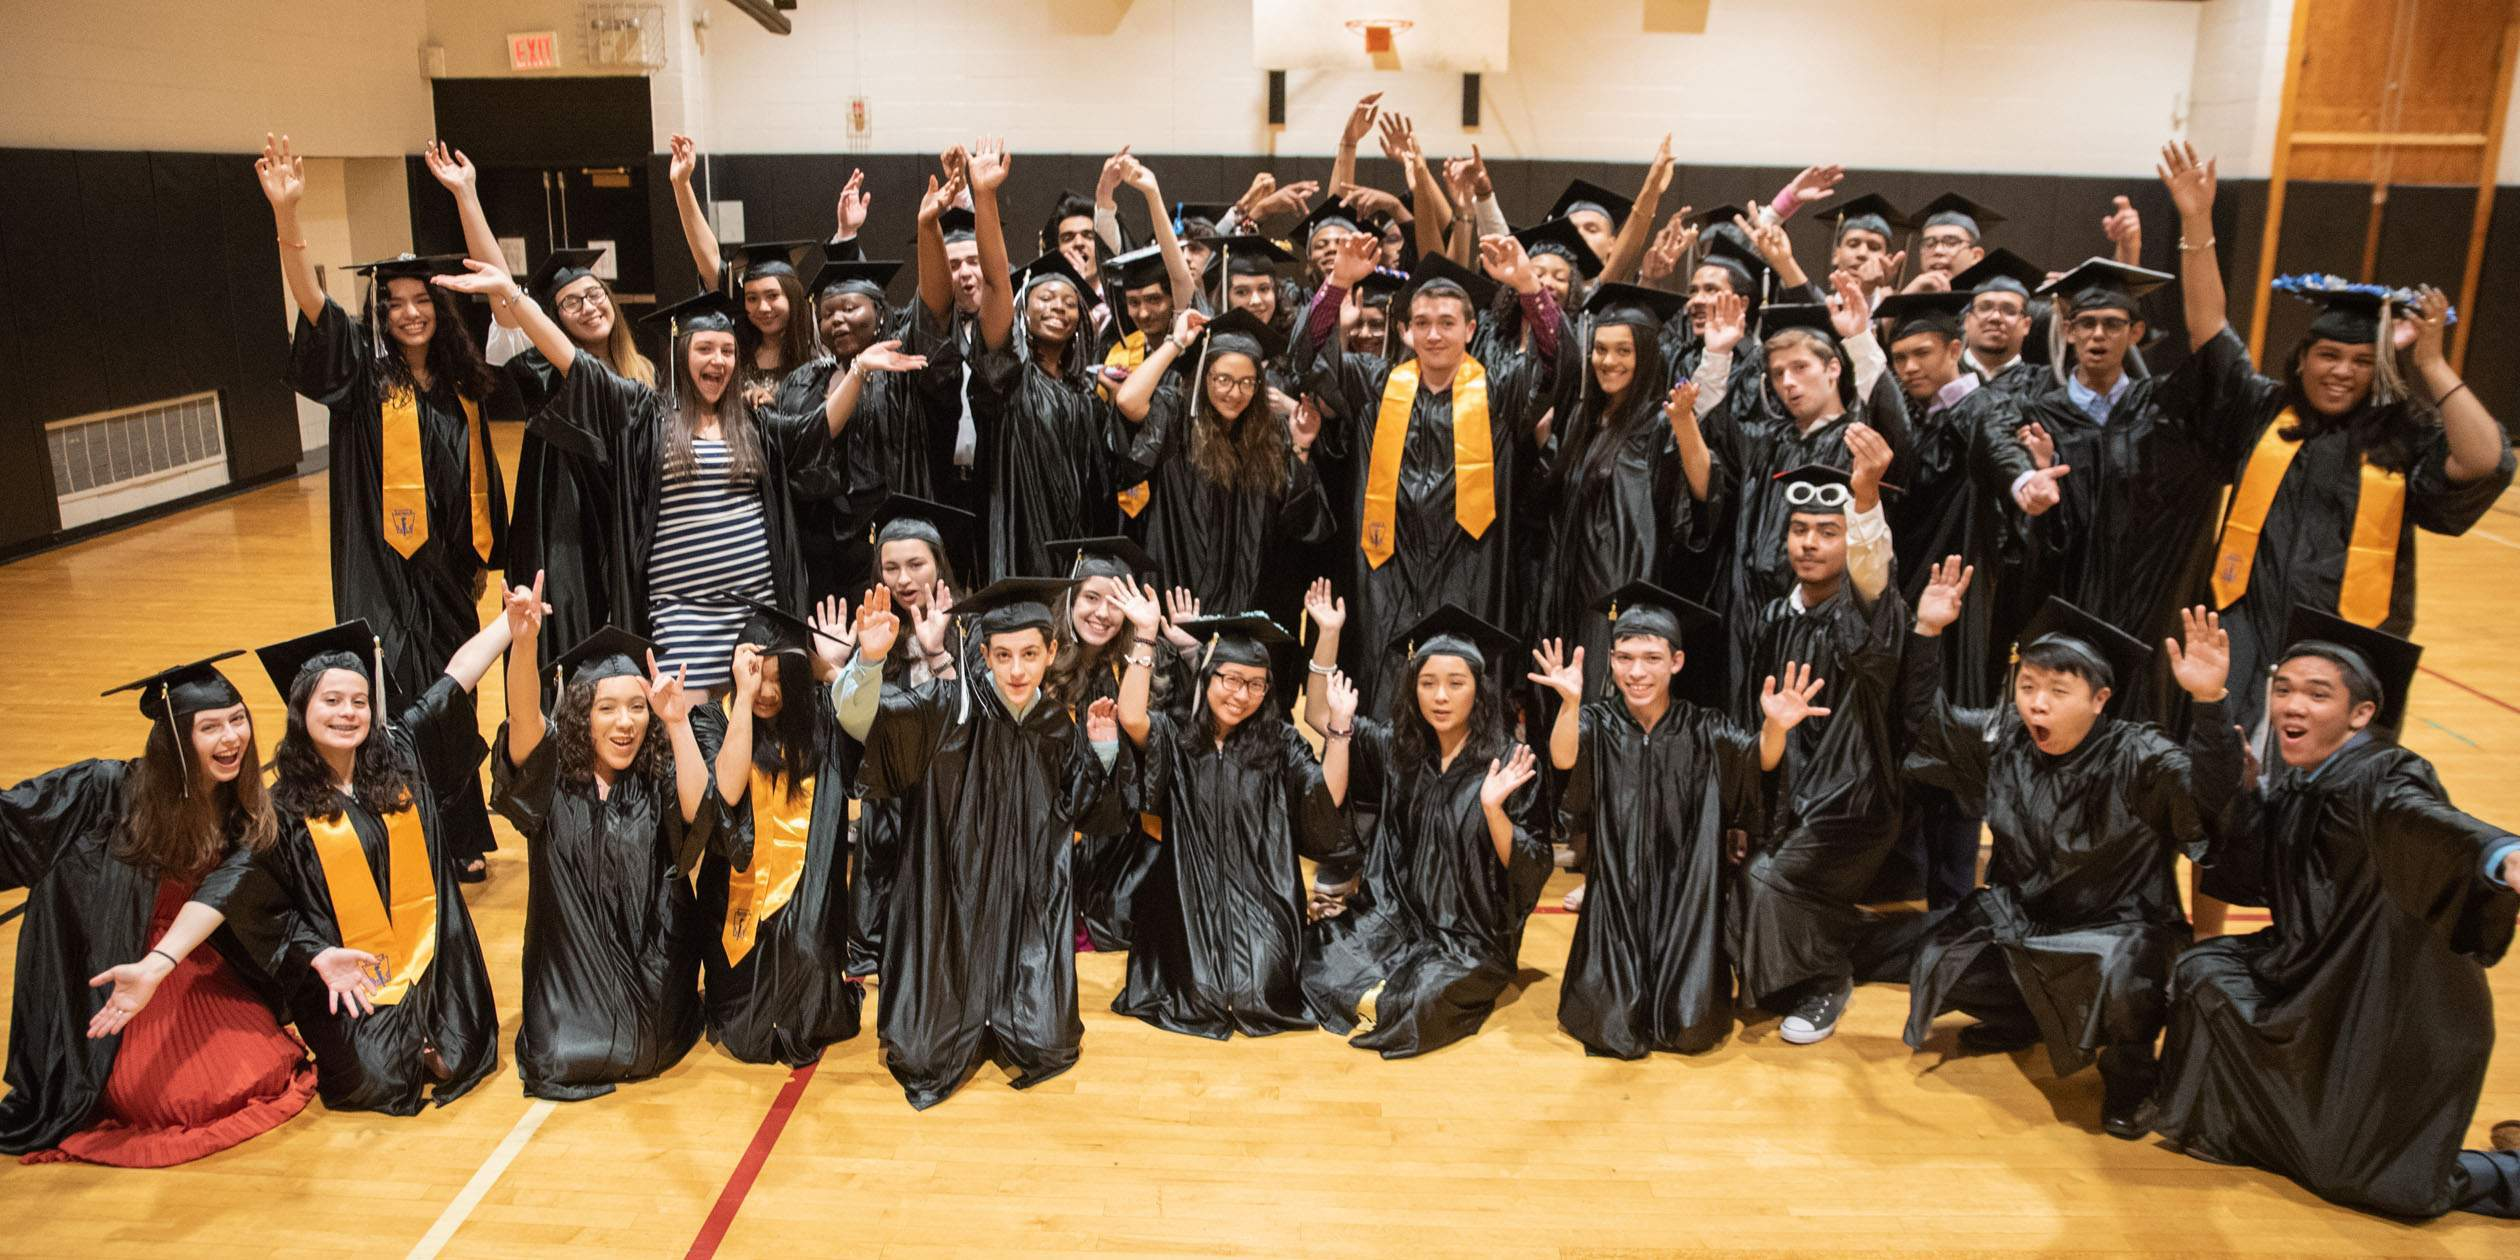 Congrats to the Class of 2018 on a 100% Graduation & College Acceptance Rate!